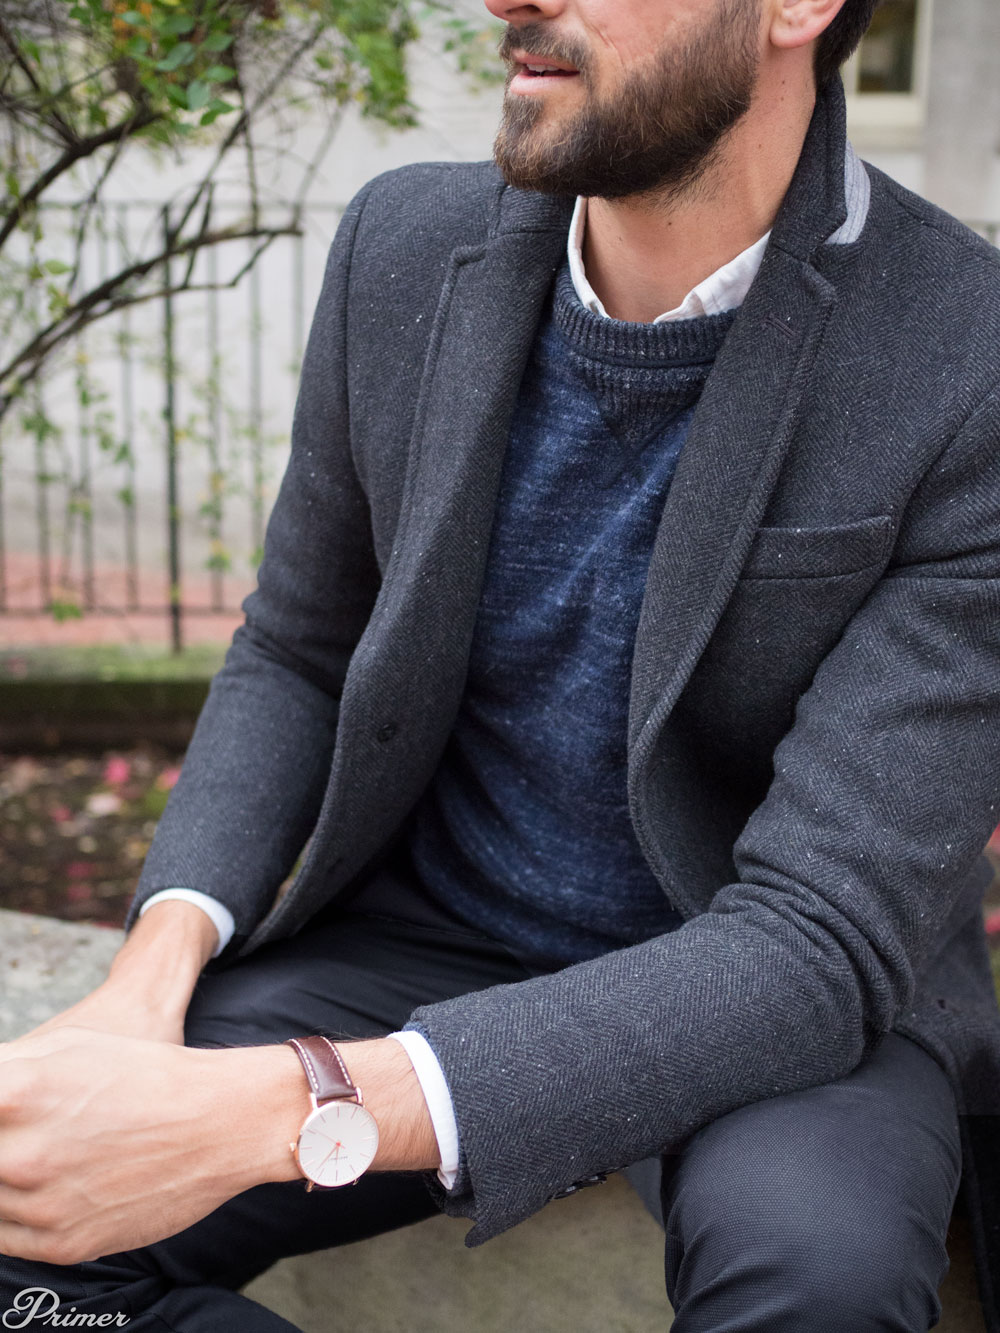 Men Winter Fashion Inspiration - topcoat brathwait watch blue sweater